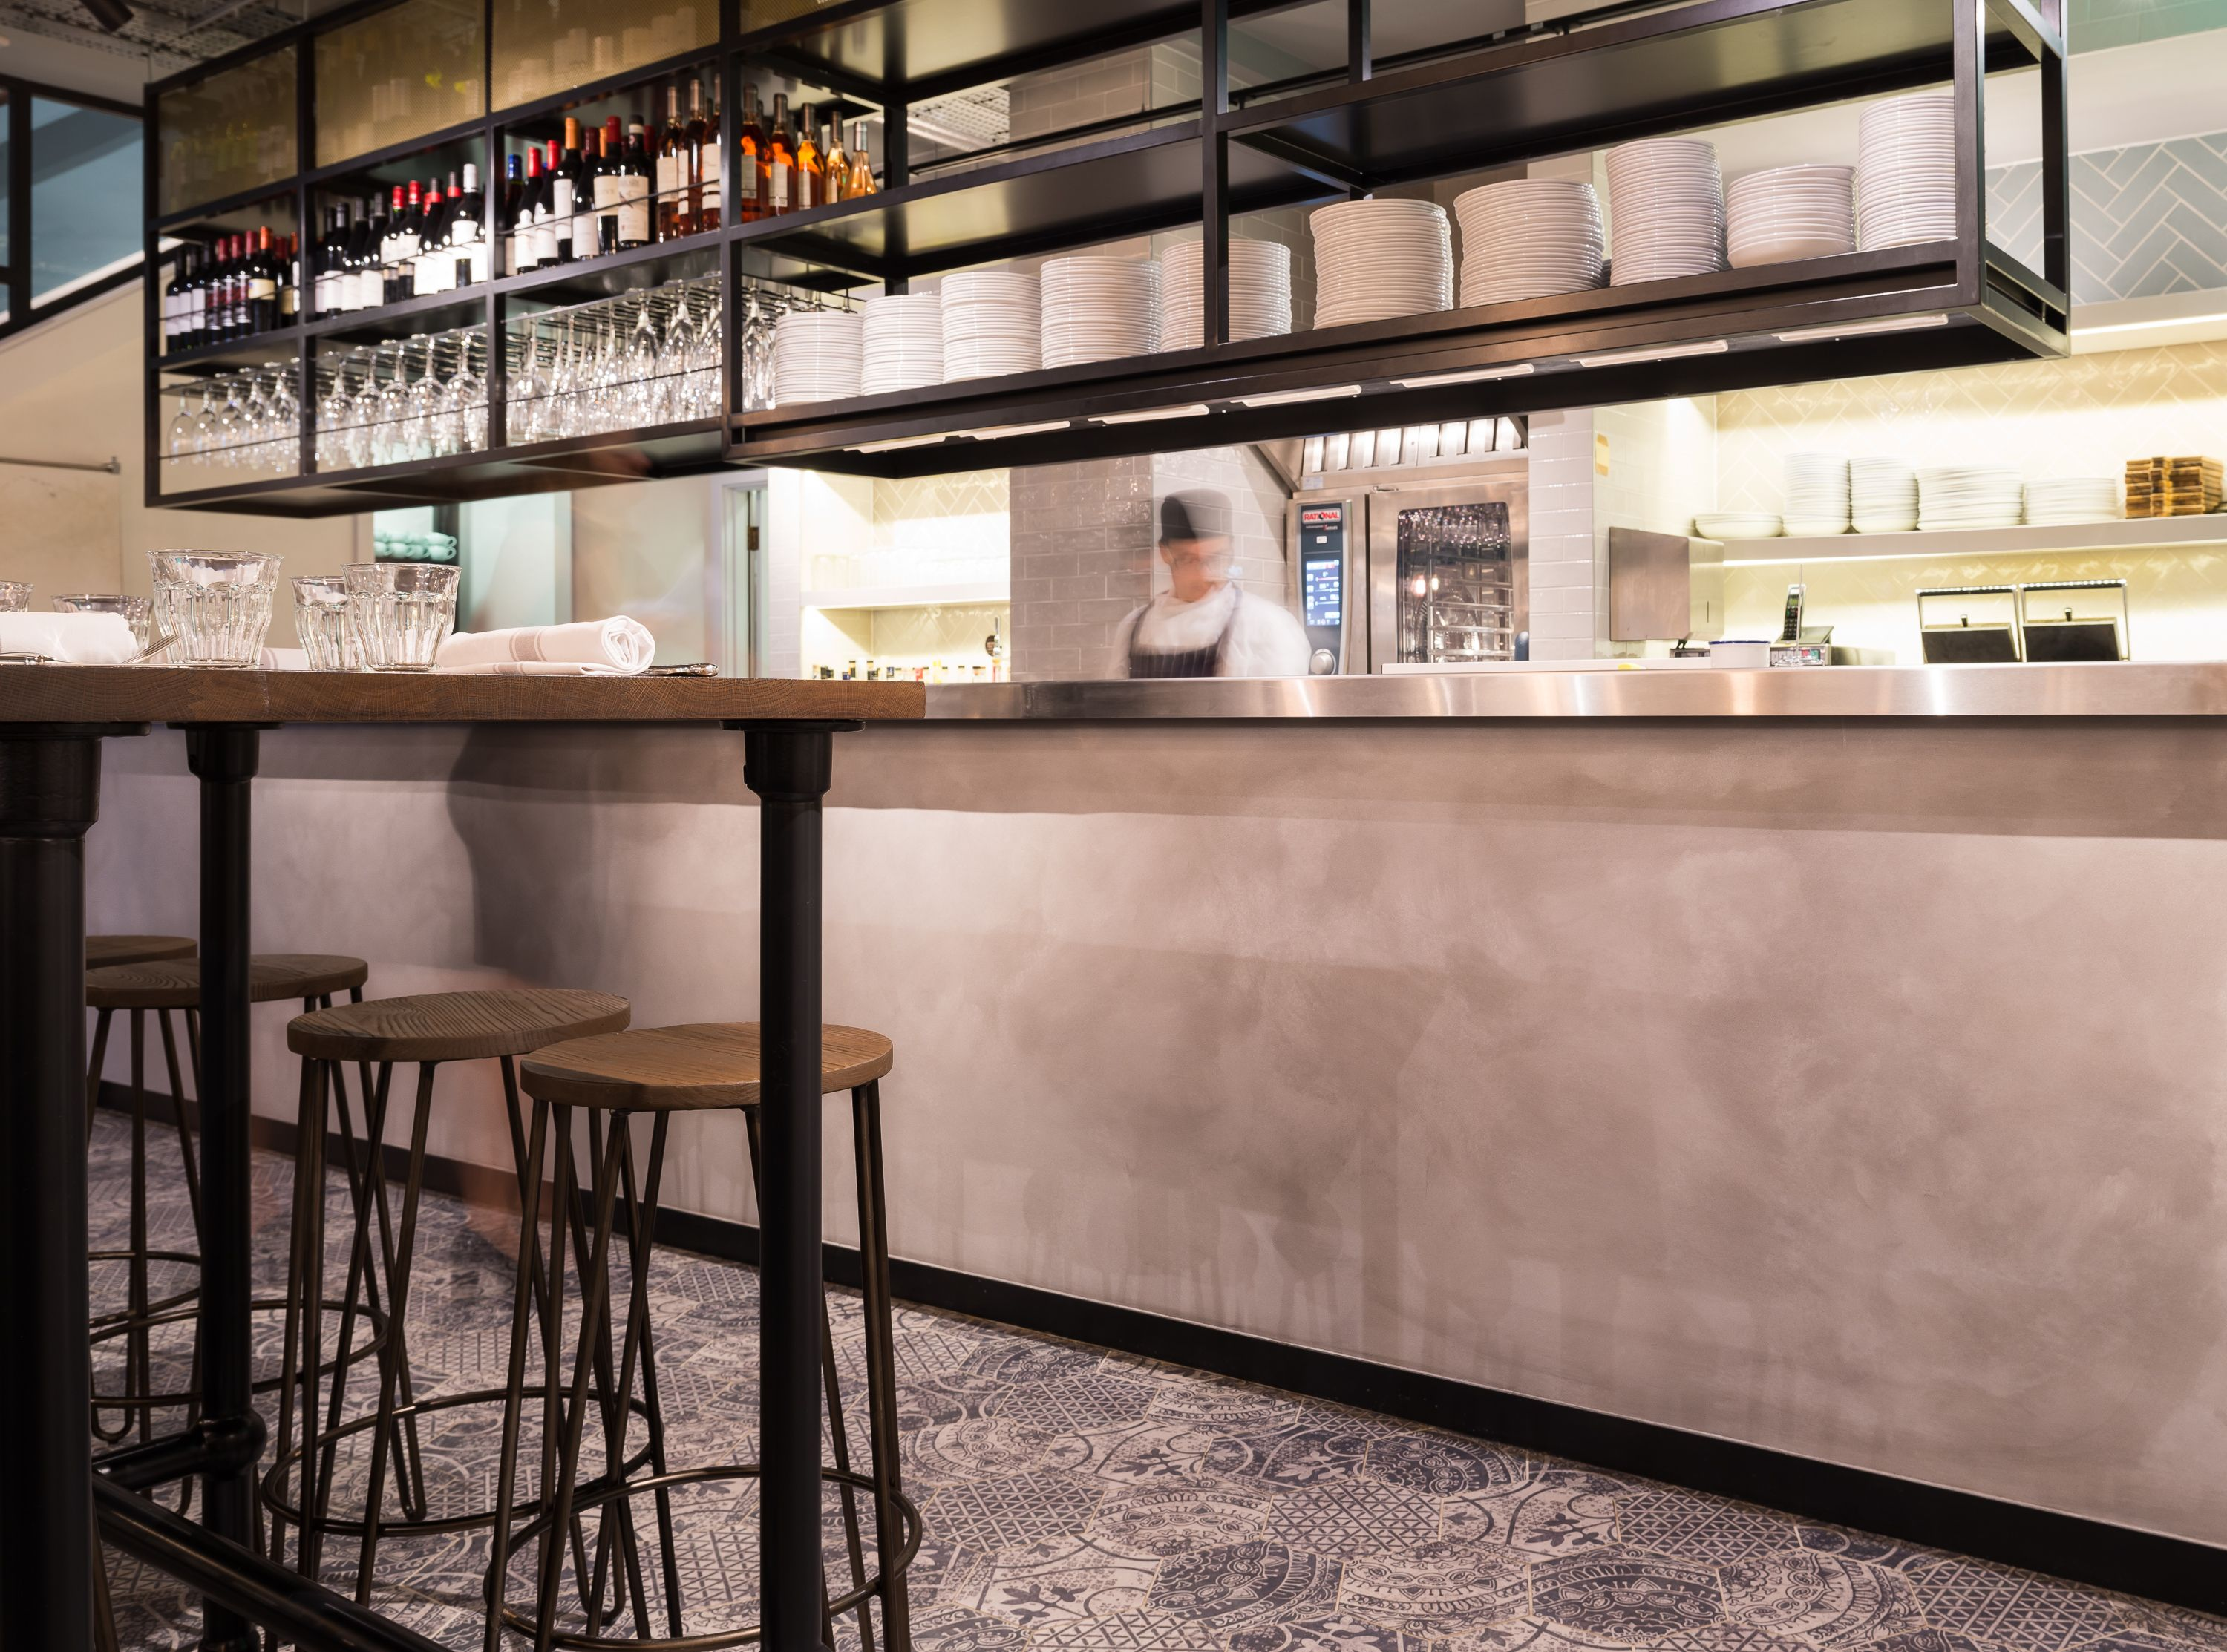 Clay Plasters Are A More Versatile Way Of Creating The Polished Concrete Effect Www Clay Works Com Restaurant Interior Design Polished Concrete Wall Finishes